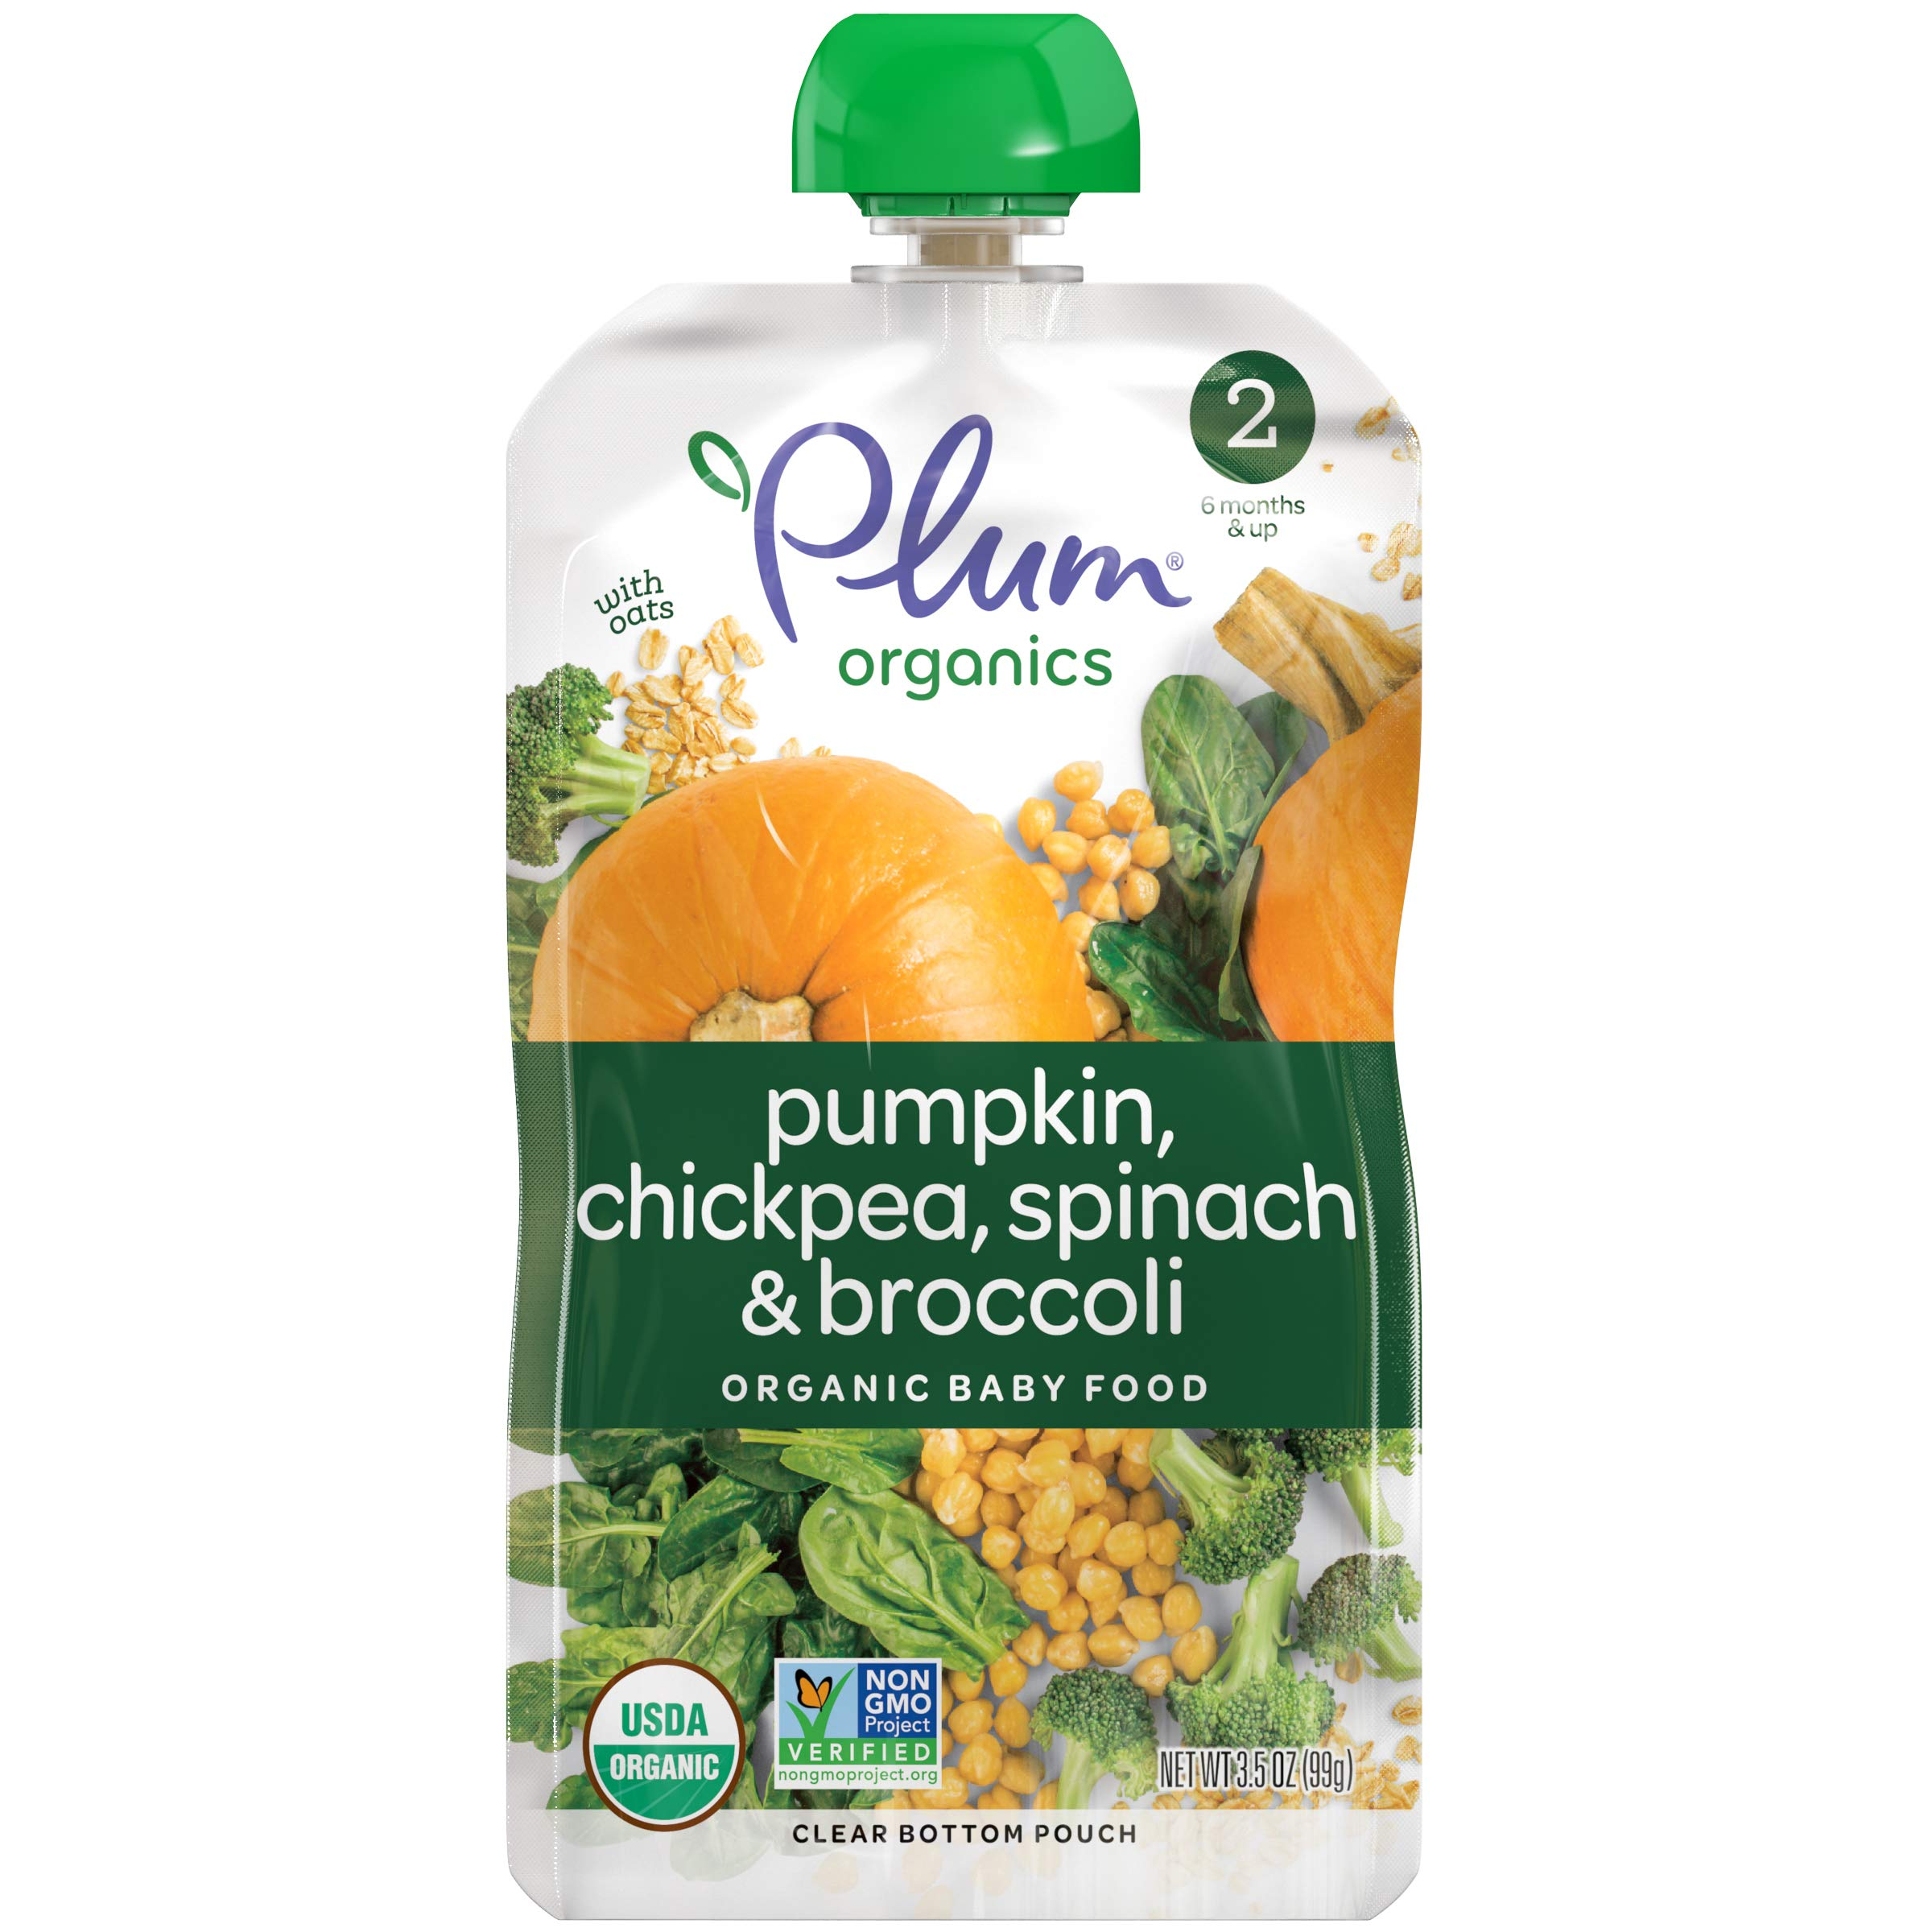 Plum Organics Stage 2 Hearty Veggie, Organic Baby Food, Pumpkin, Spinach, Chickpea and Broccoli, 3.5 ounce pouches (Pack of 12) (Packaging May Vary) by Plum Organics